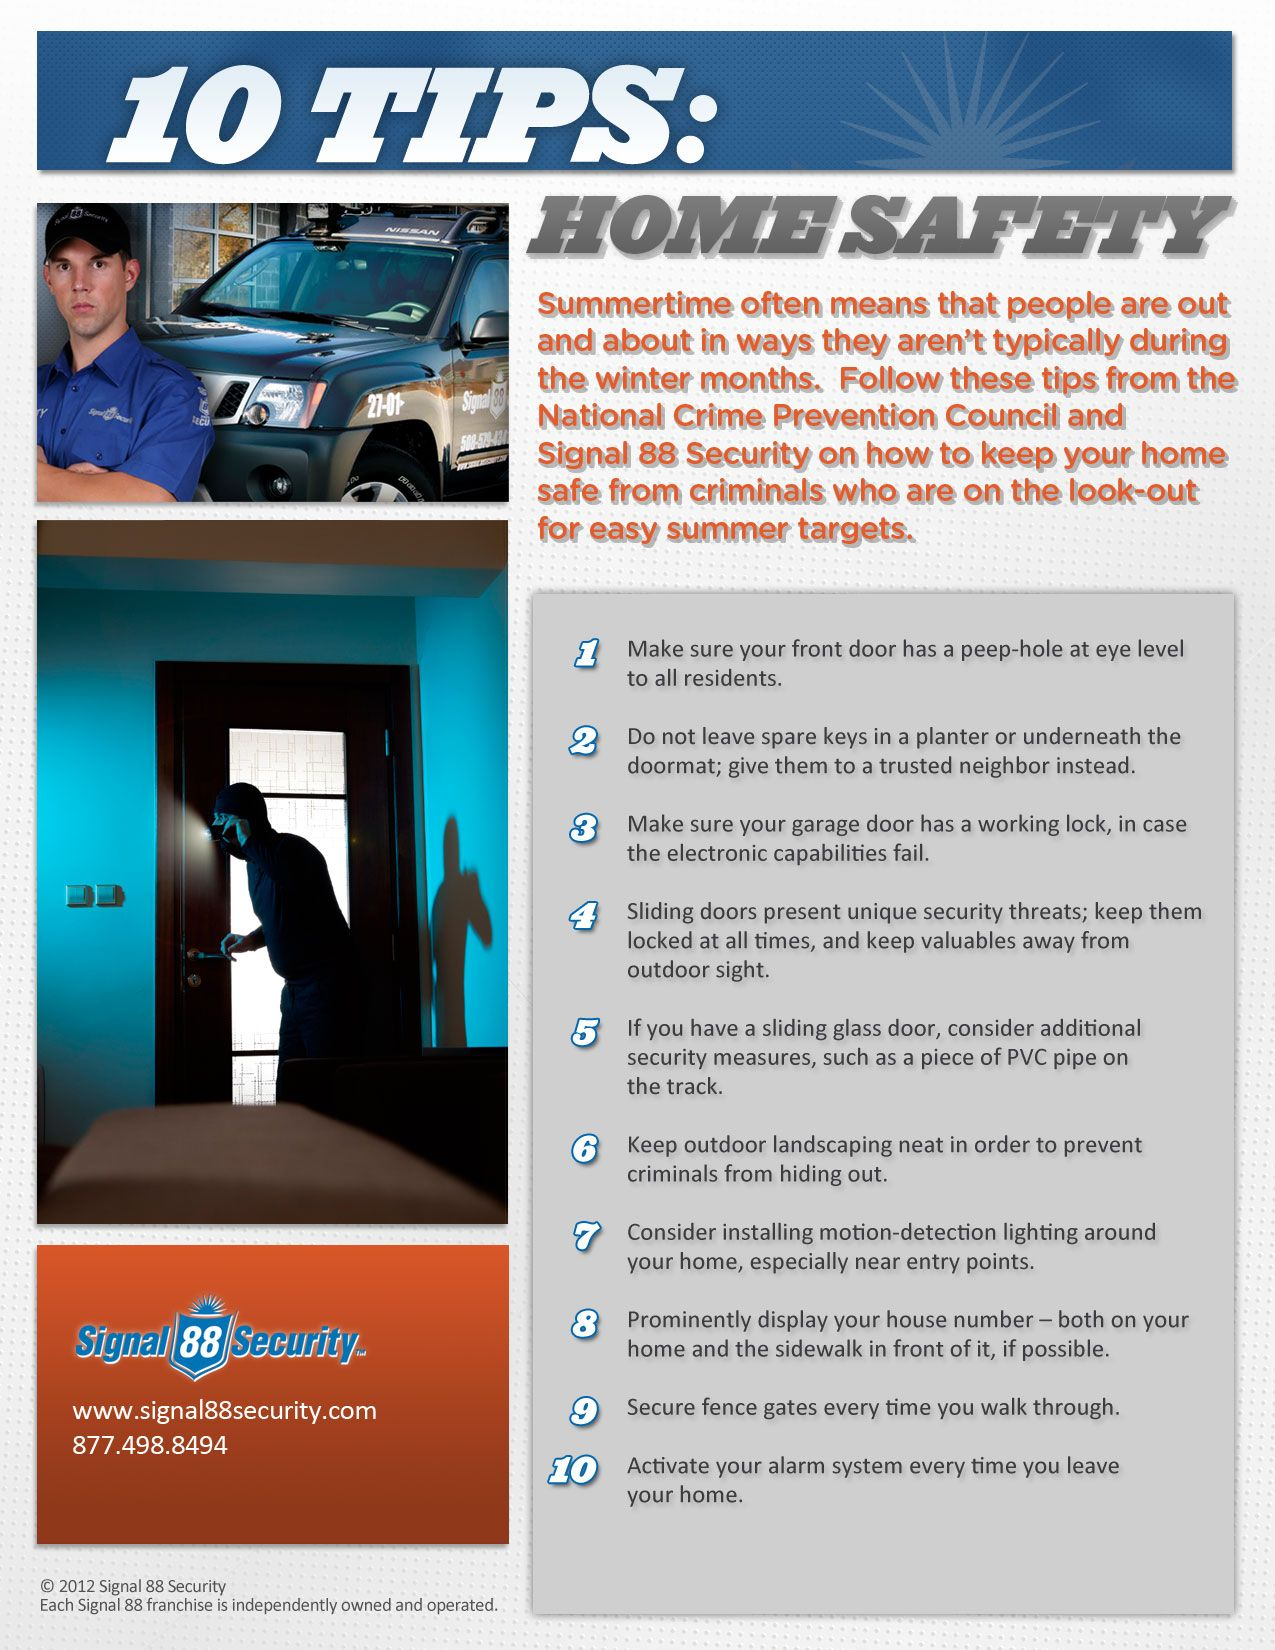 10 Tips Home Safety Home Safety Tips Home Safety Safety Tips